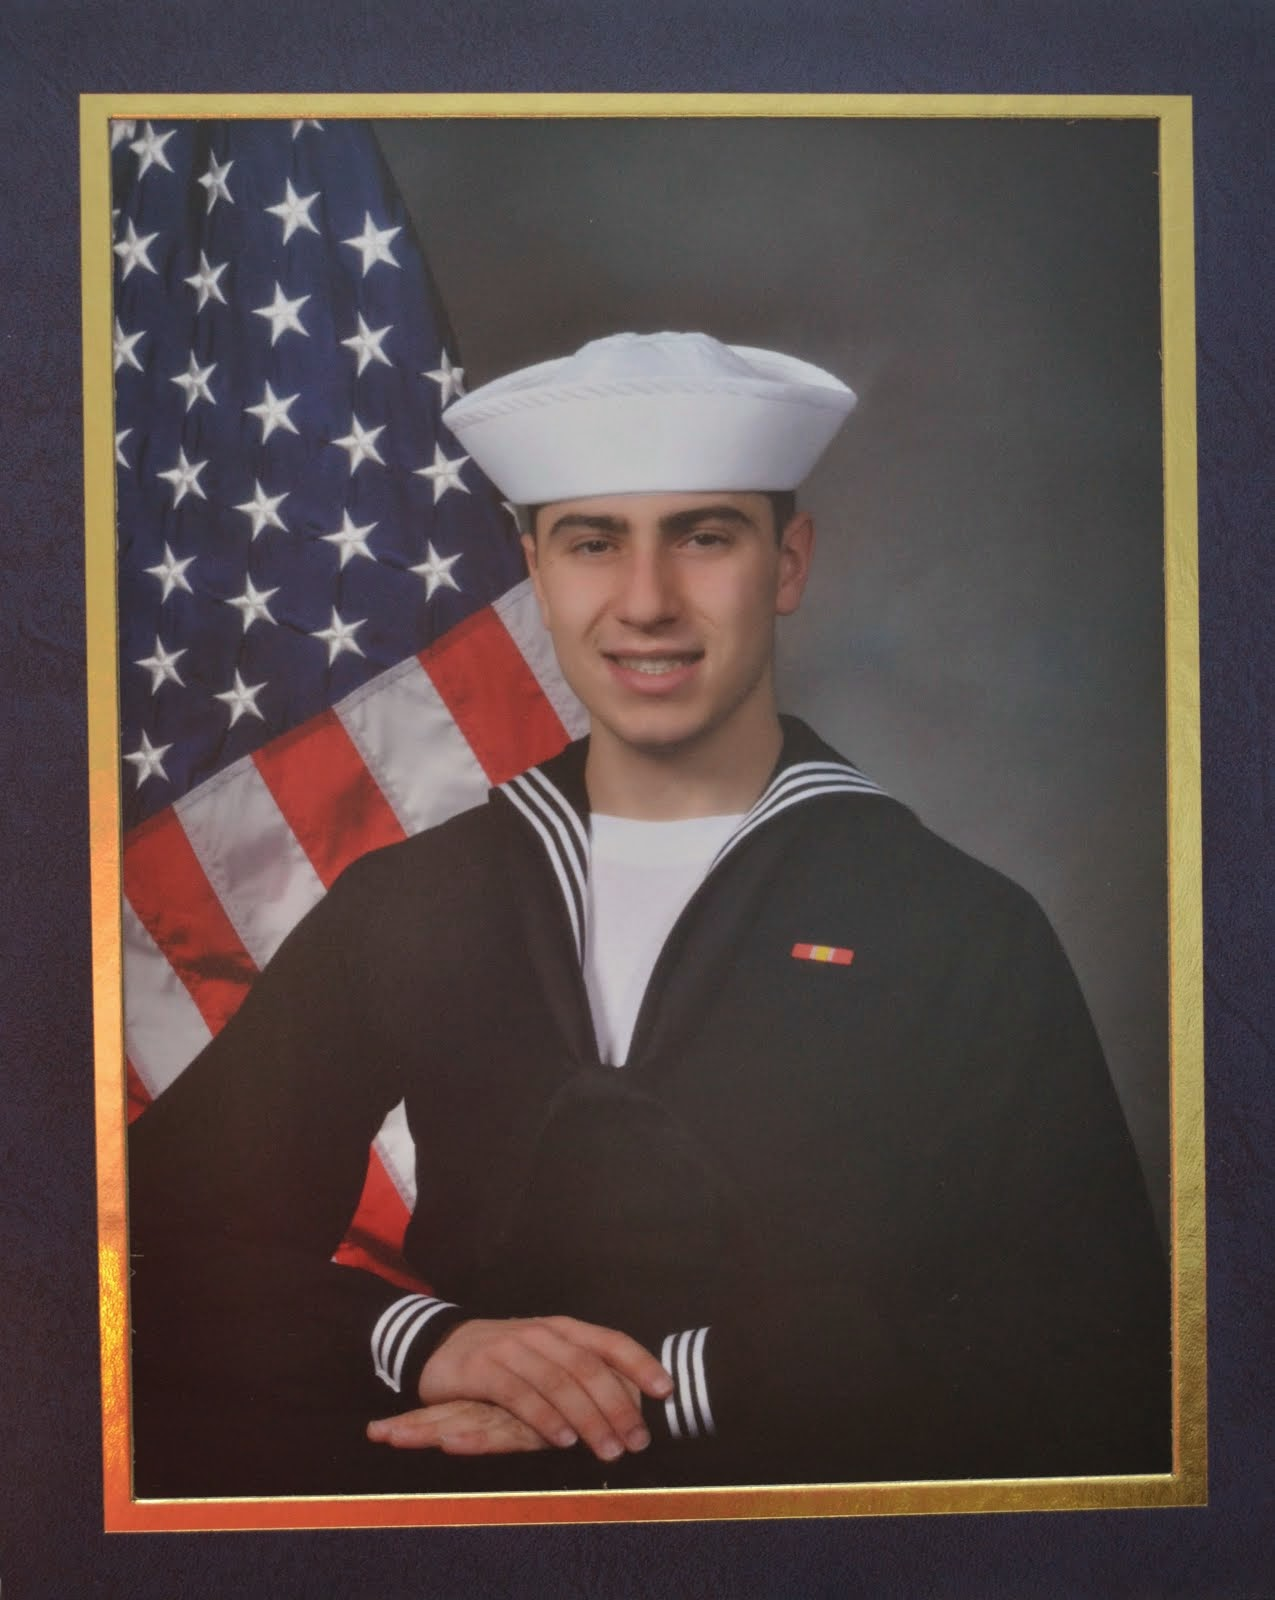 Our Sailor